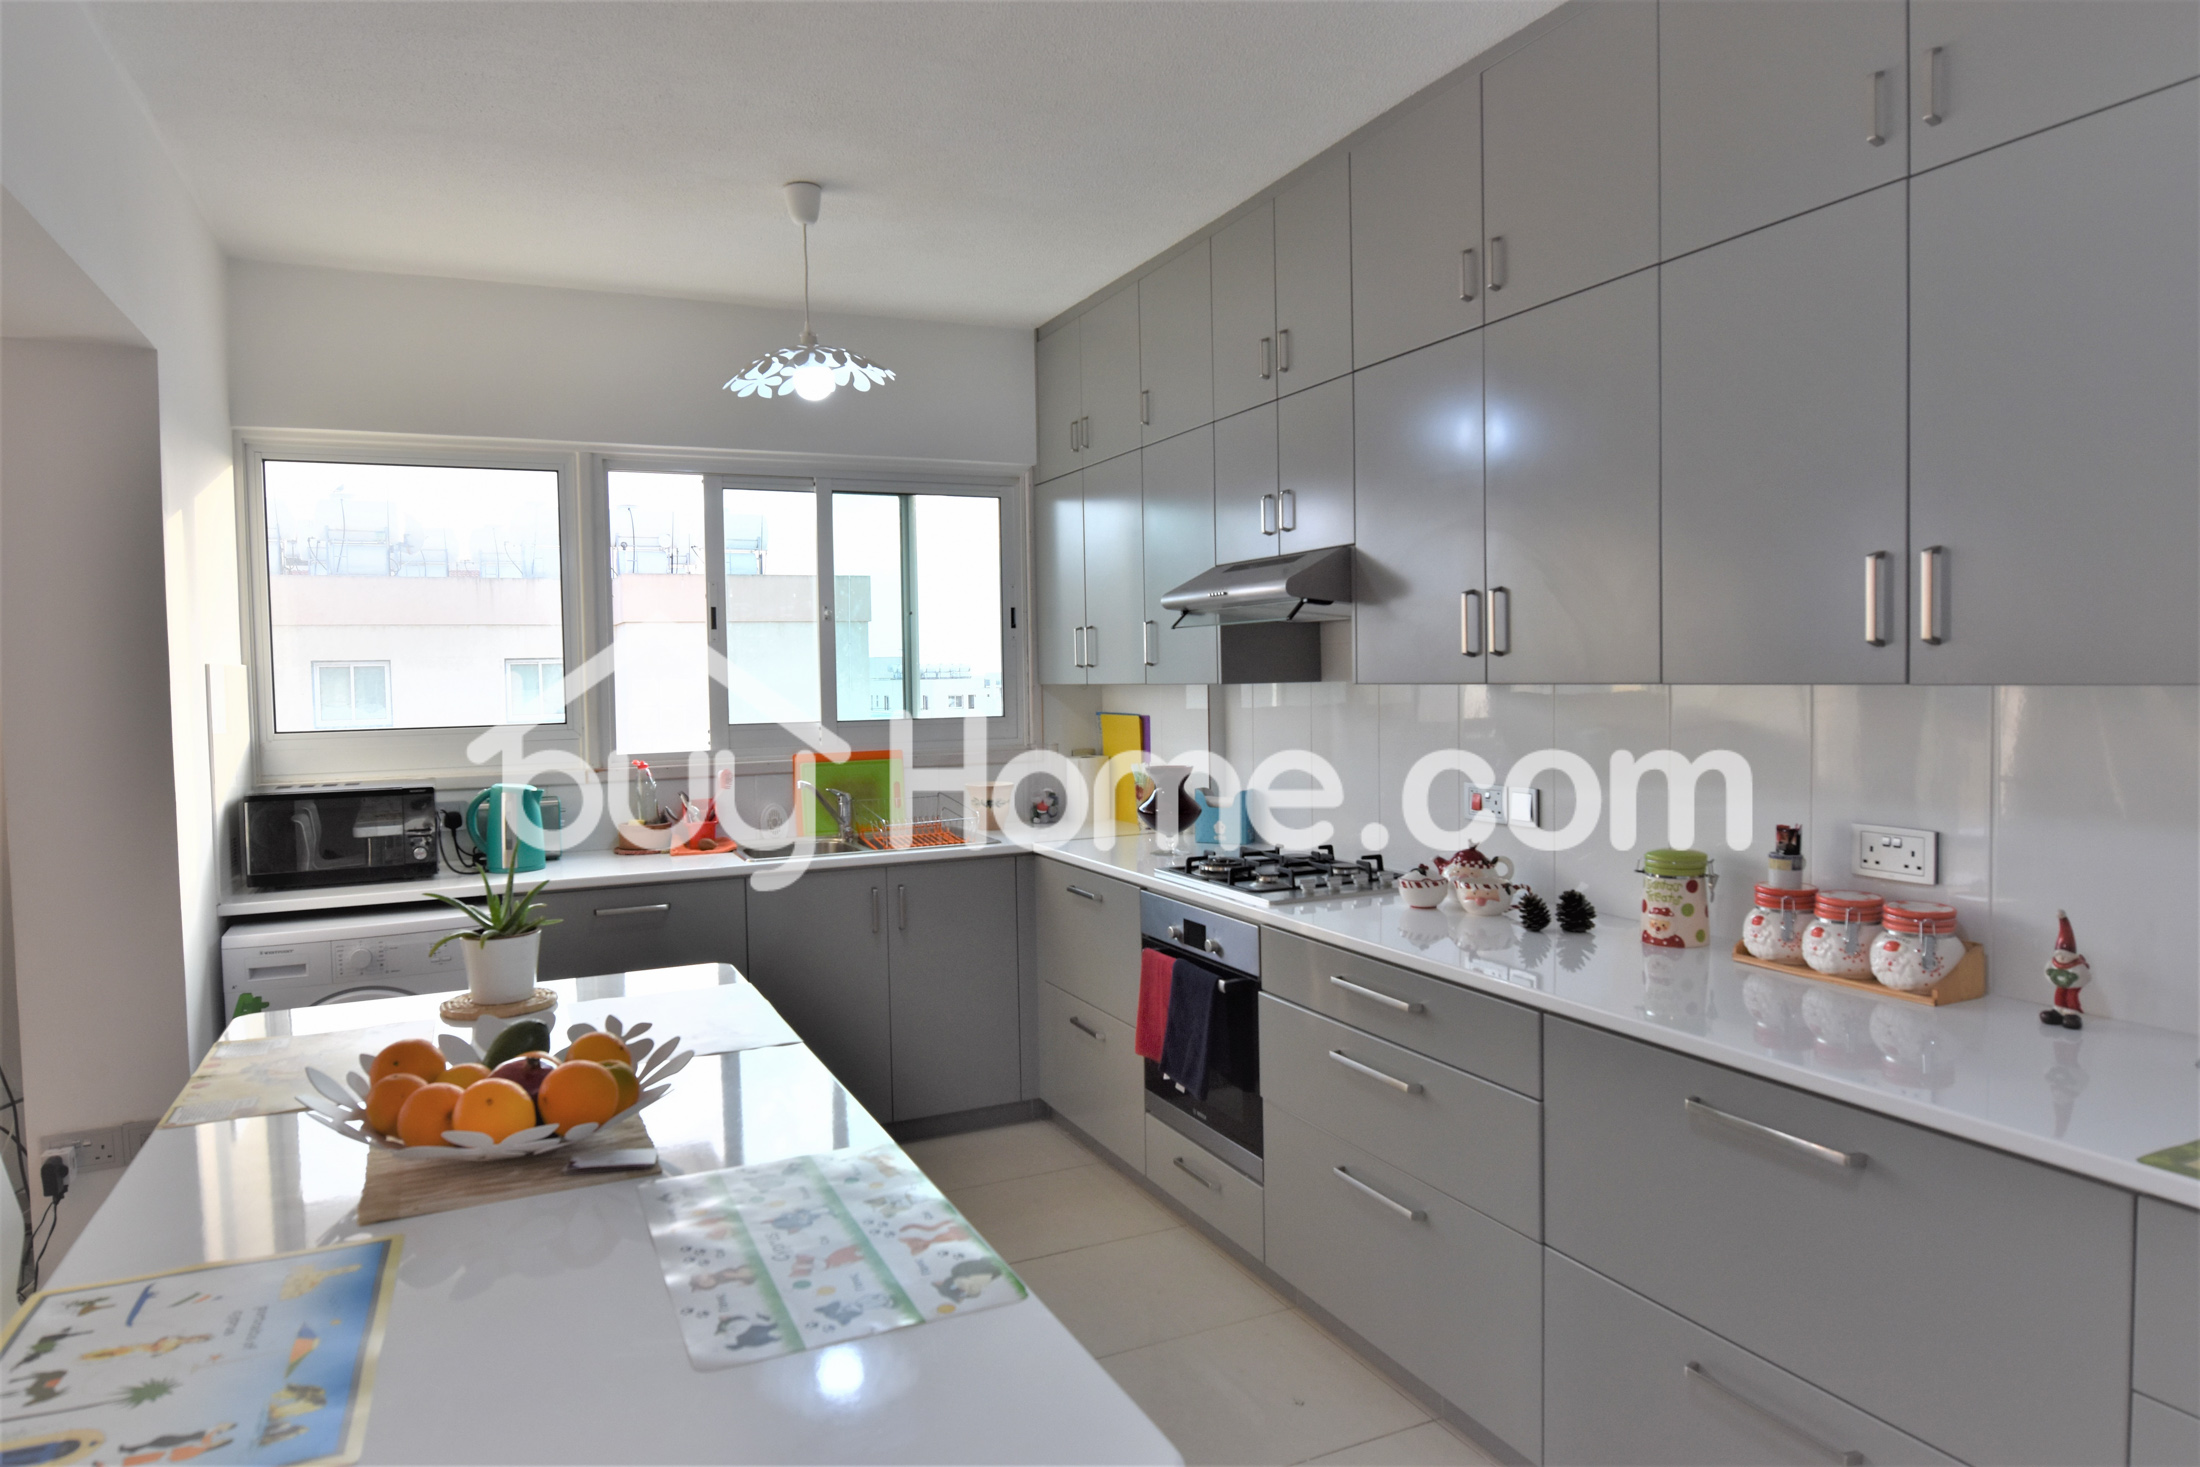 3 Bedroom Penthouse | BuyHome